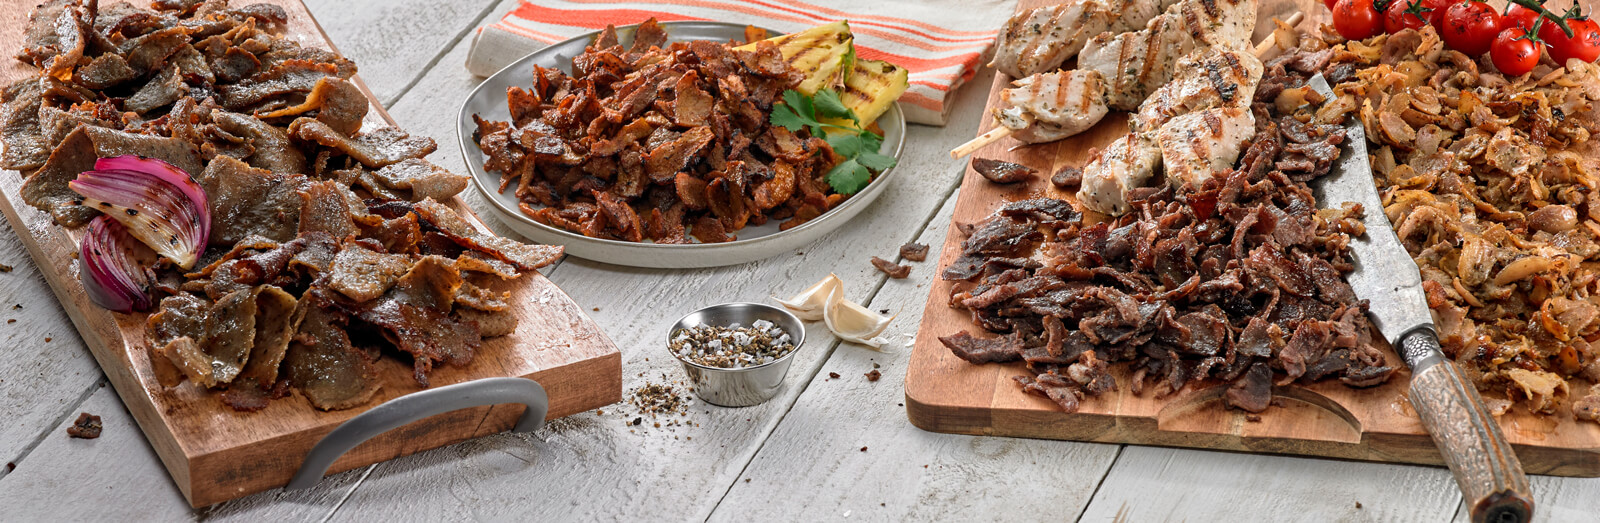 Kronos Foods - Grecian Delight - Global Proteins like Gyro, Shawarma and much more